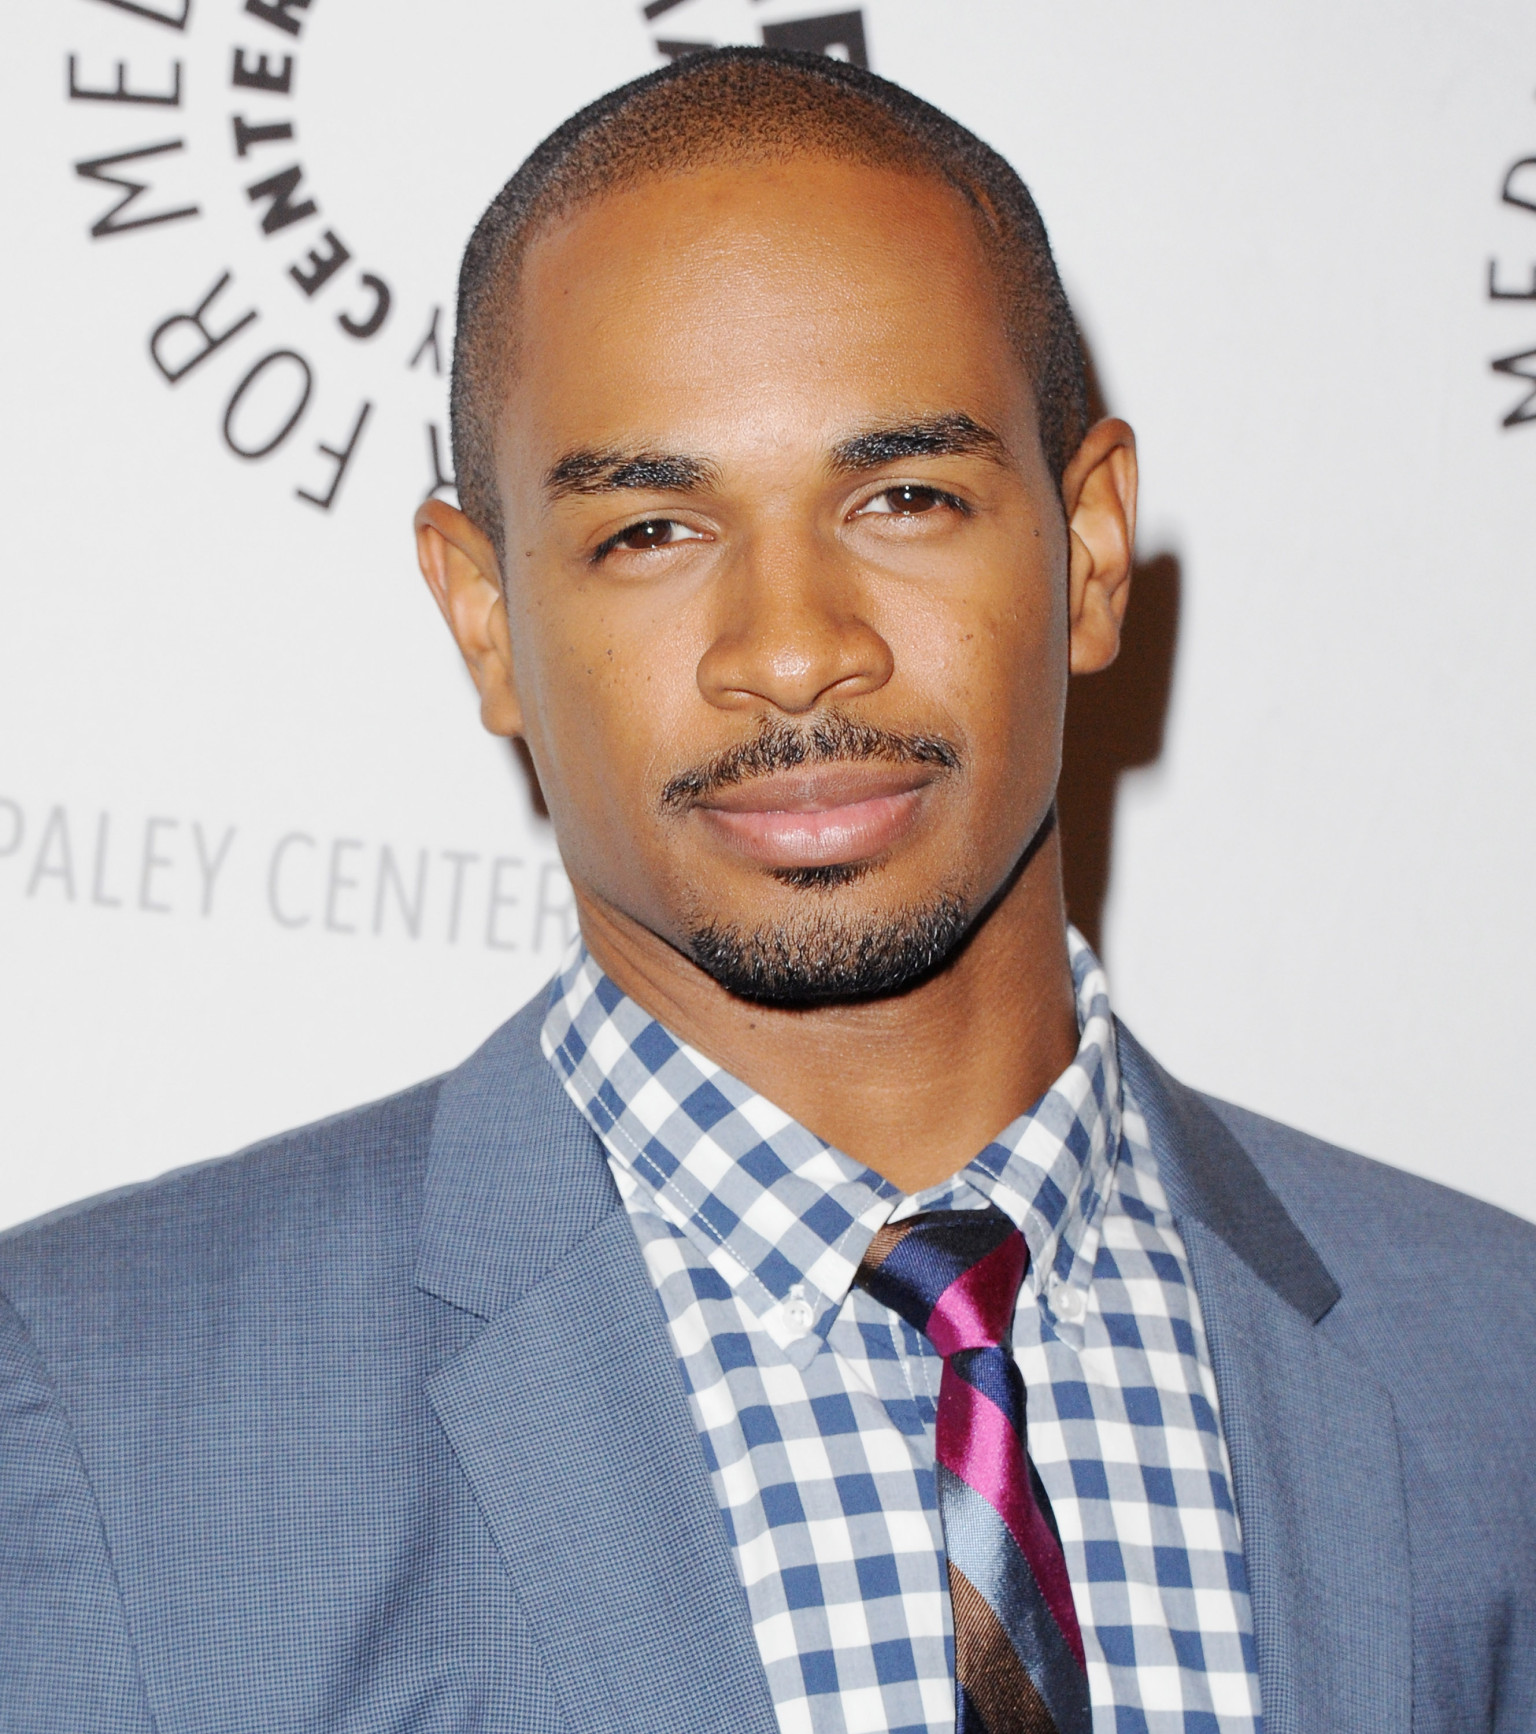 Damon Wayans, Jr. o DAMON WAYANS JR facebook jpg